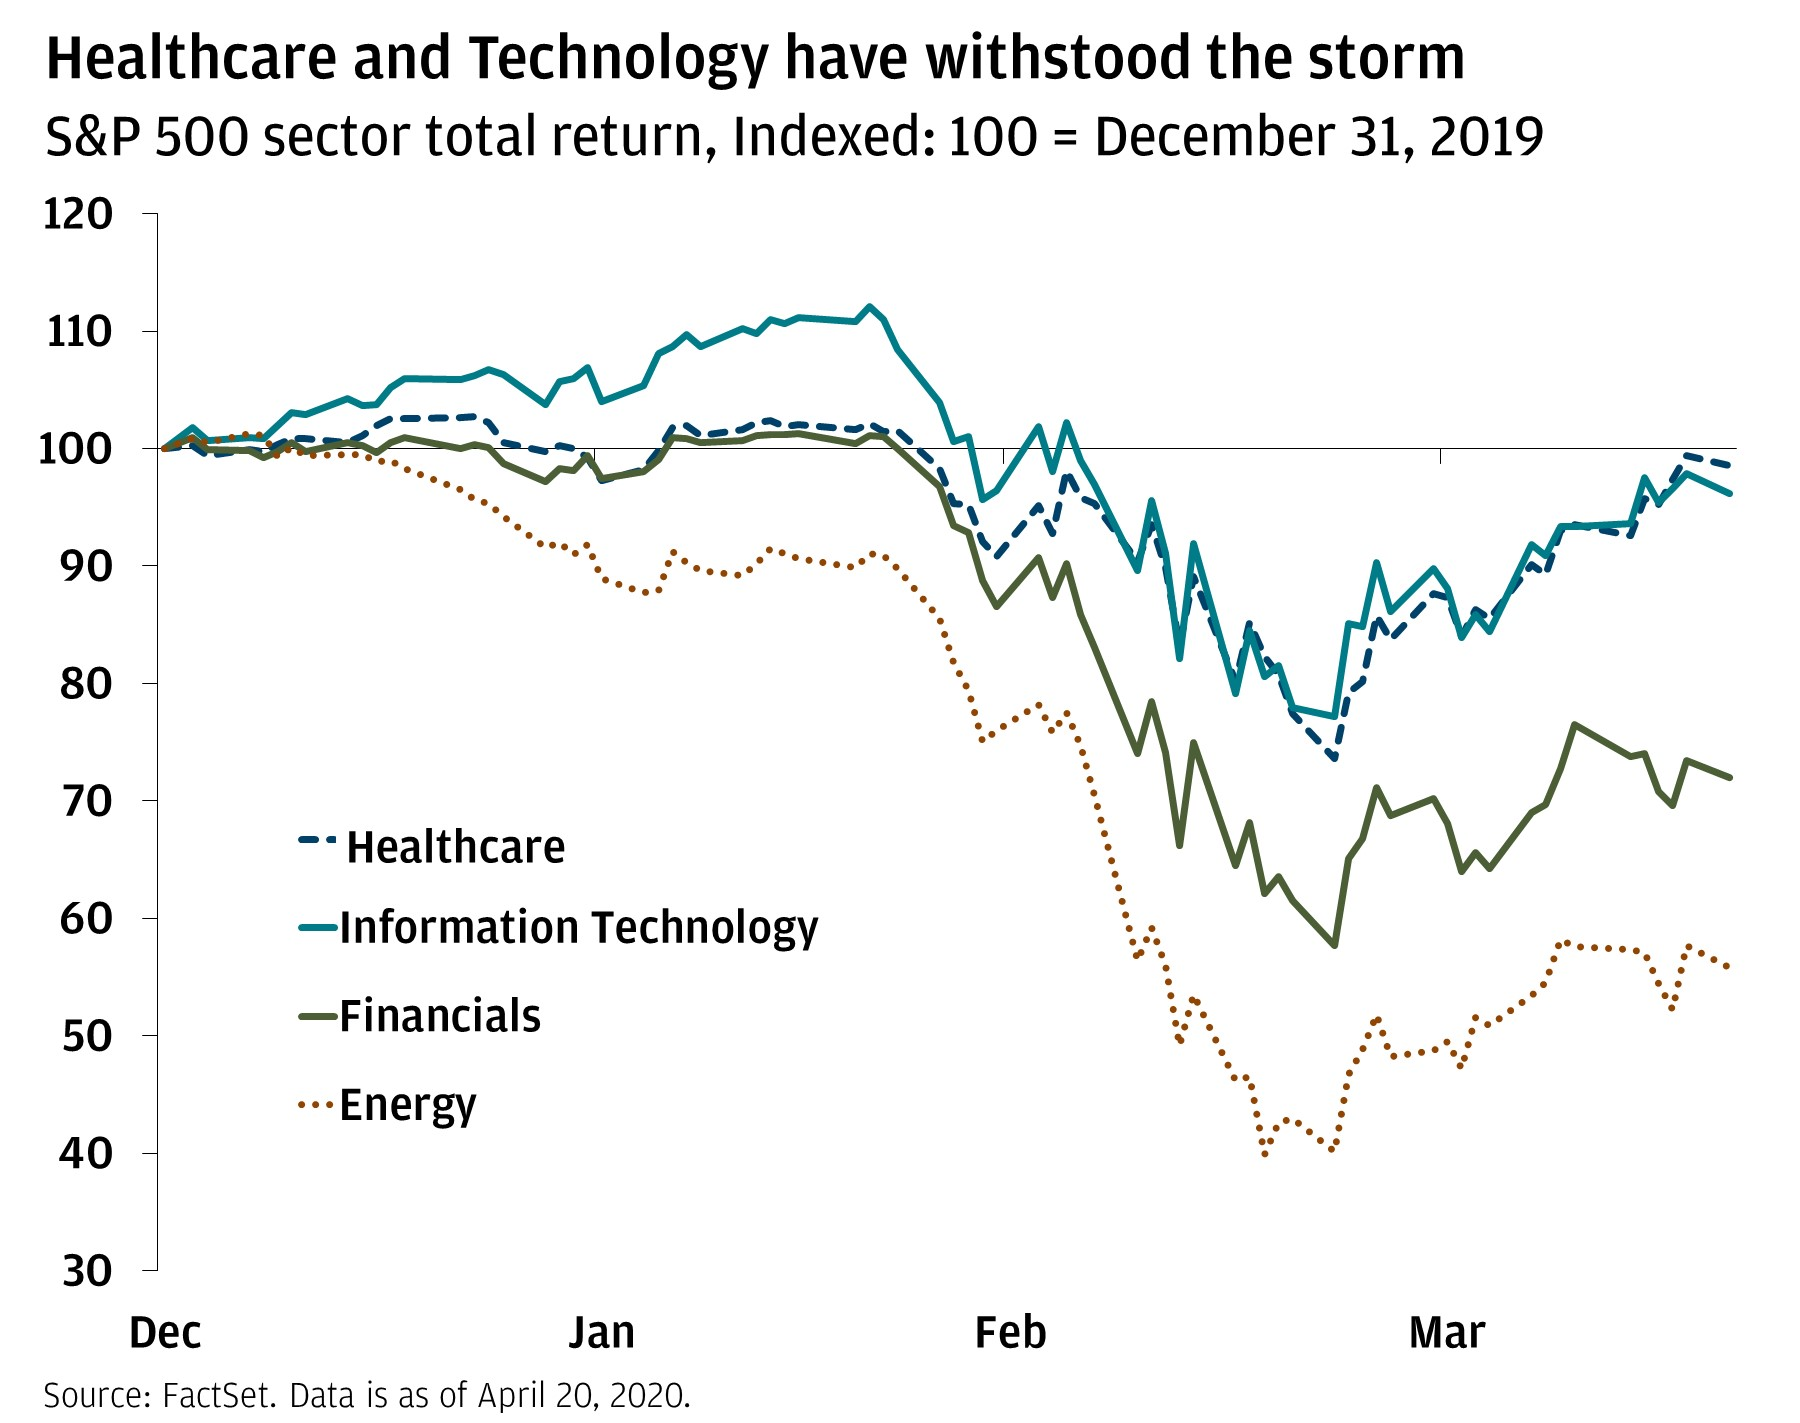 The line chart shows four different sectors indexed to 12/31/2019: healthcare, information technology, financials and energy. The chart shows that healthcare and technology have best withstood the market downturn.